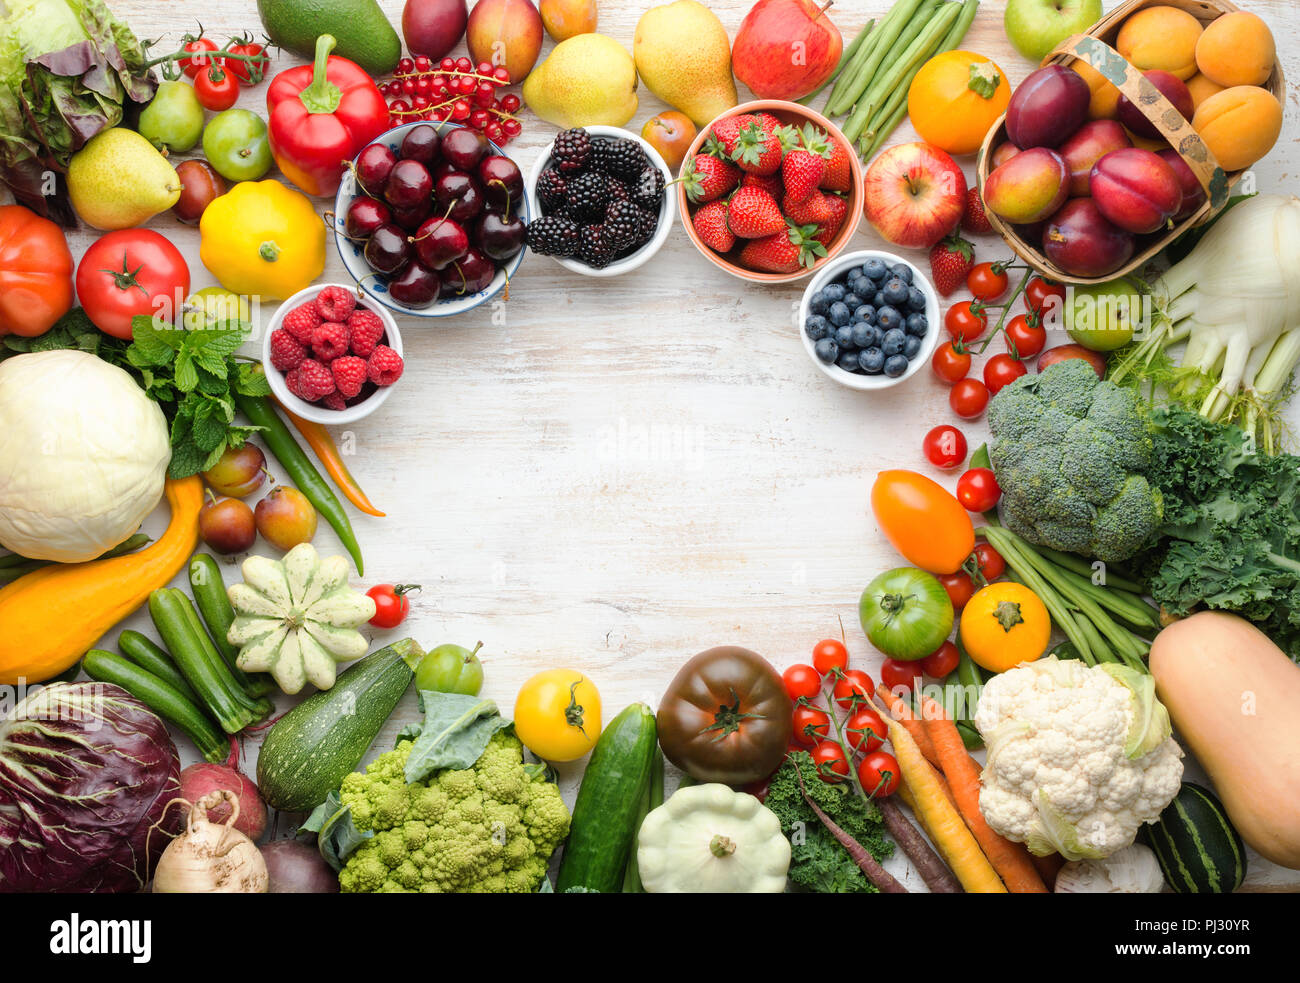 Fresh summer fruits vegetables berries background, cherries peaches strawberries cabbage broccoli cauliflower squash tomatoes carrots beans beetroot, pepper, top view, selective focus Stock Photo